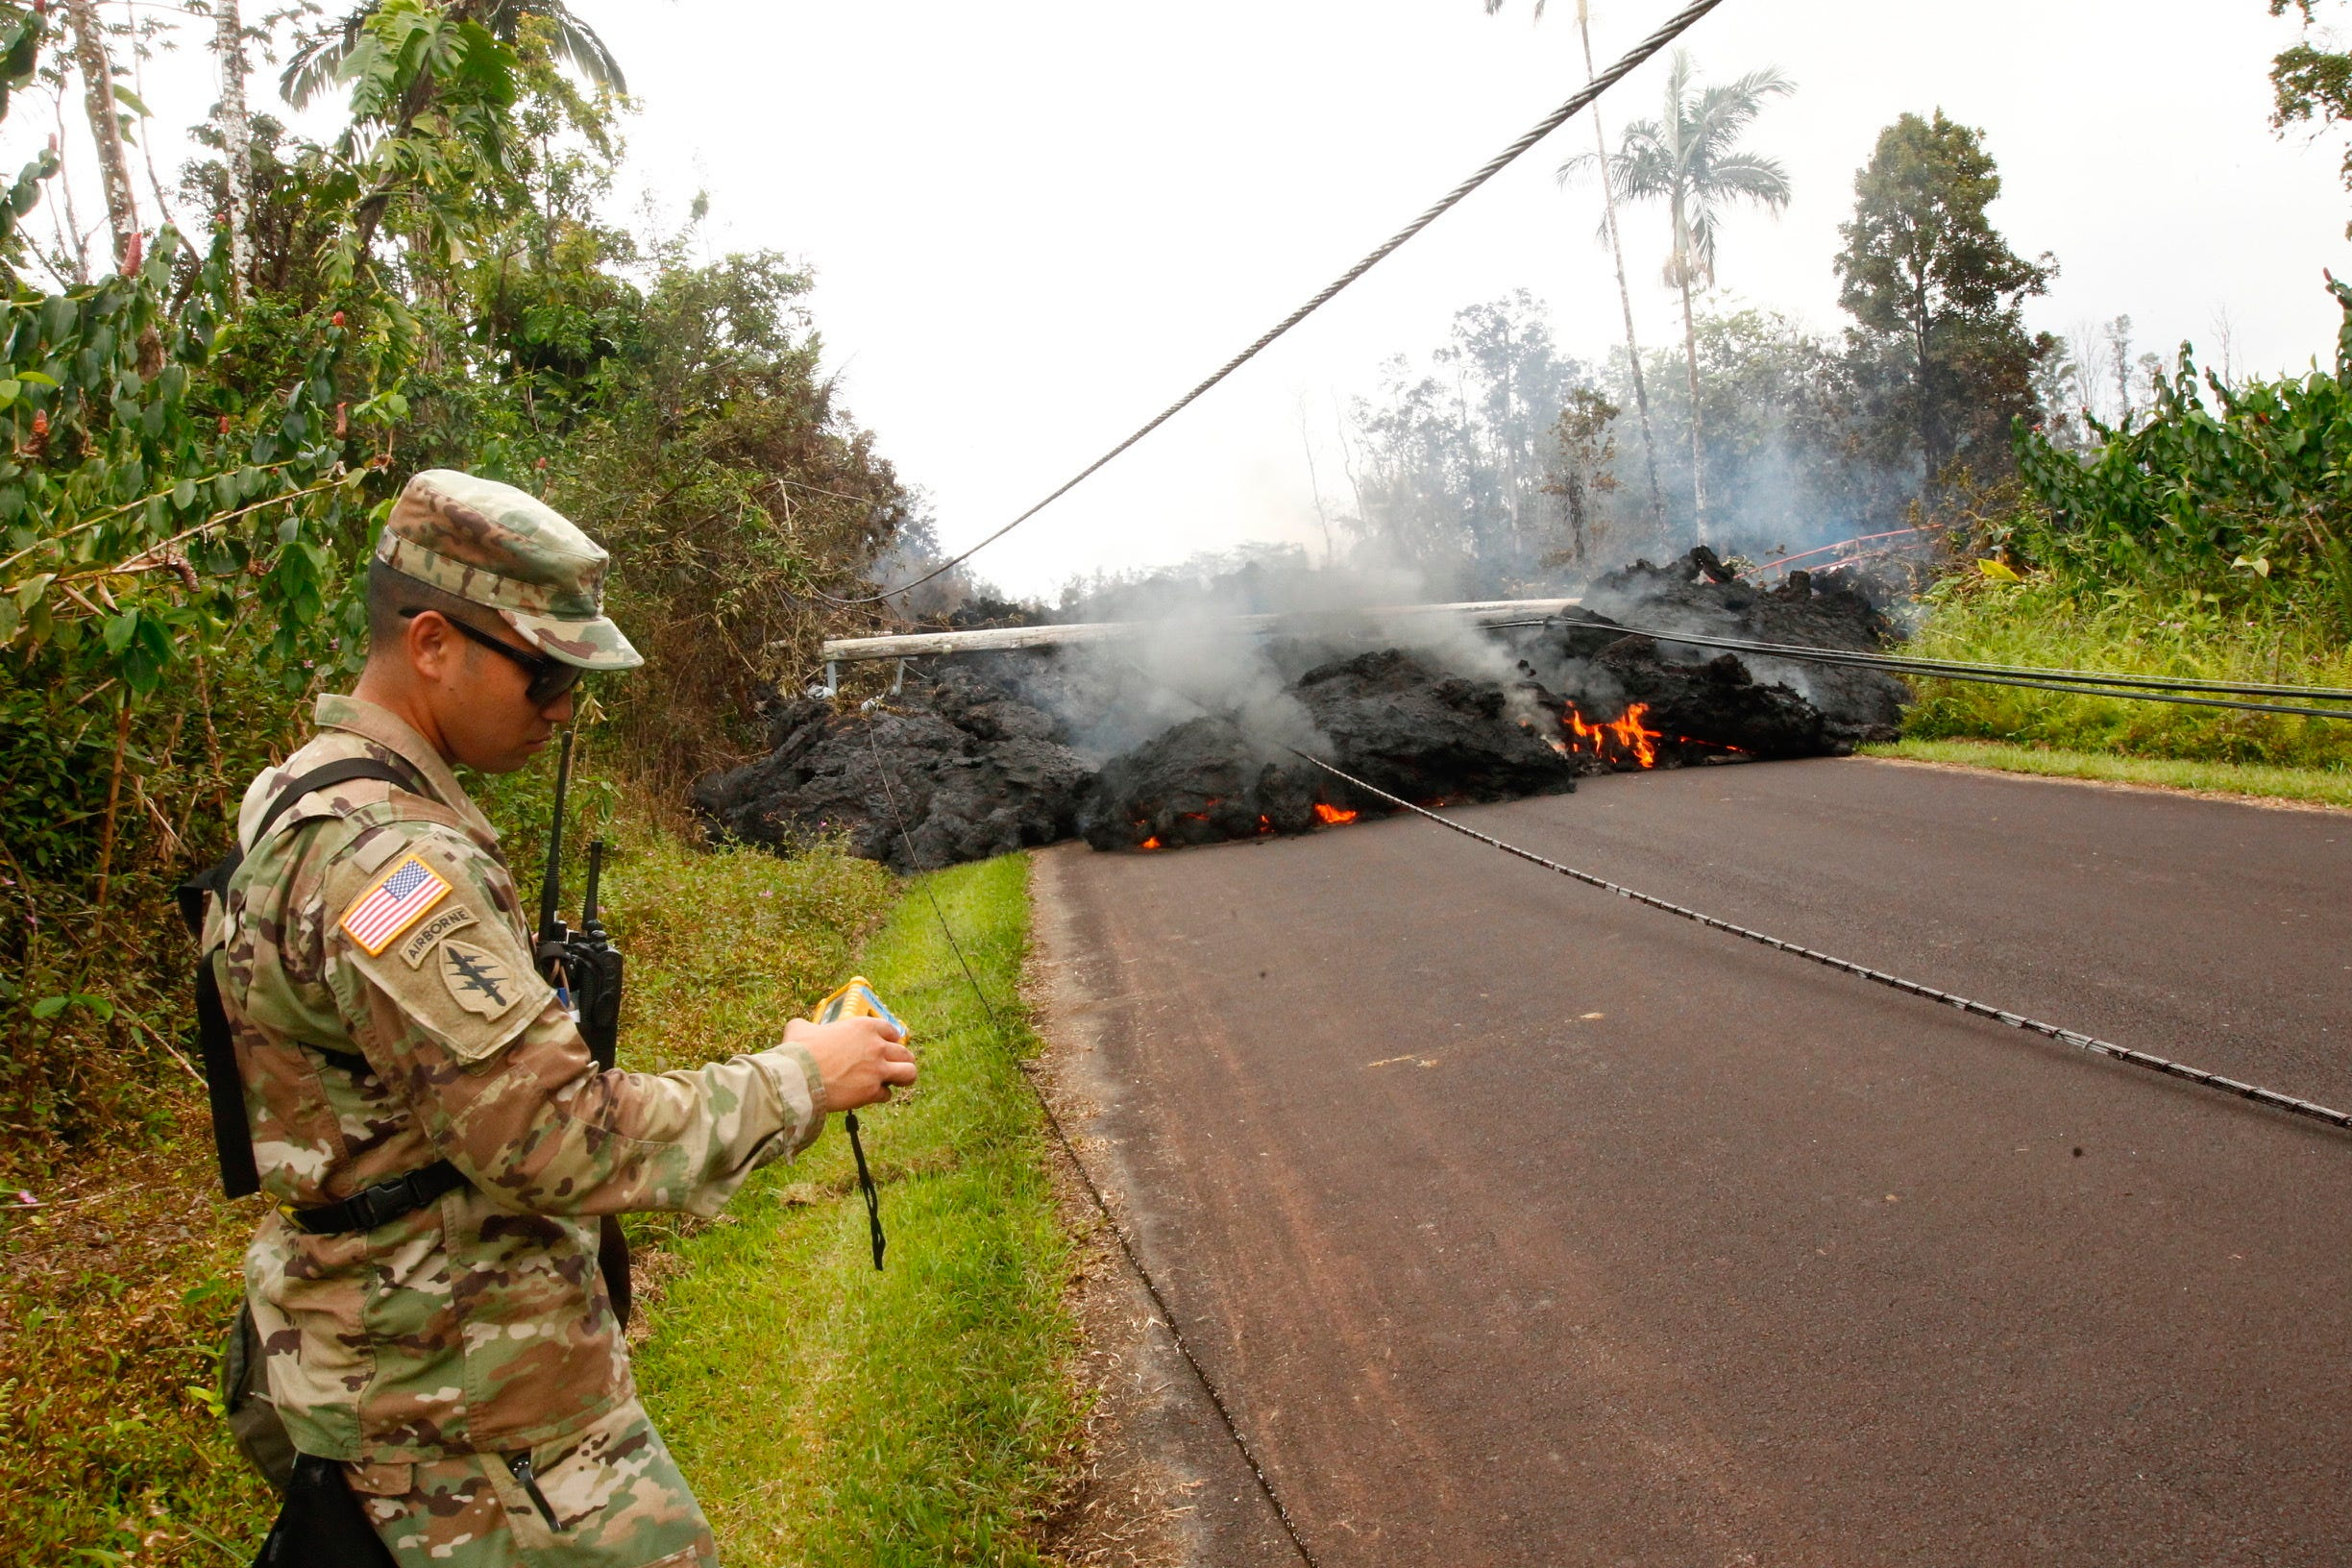 Lava continues to overrun Hookupu Street, May 7, 2018, in Pahoa, Hawaii. Hawaii's Kilauea volcano has destroyed homes and spewed lava hundreds of feet into the air, leaving evacuated residents unsure how long they might be displaced.